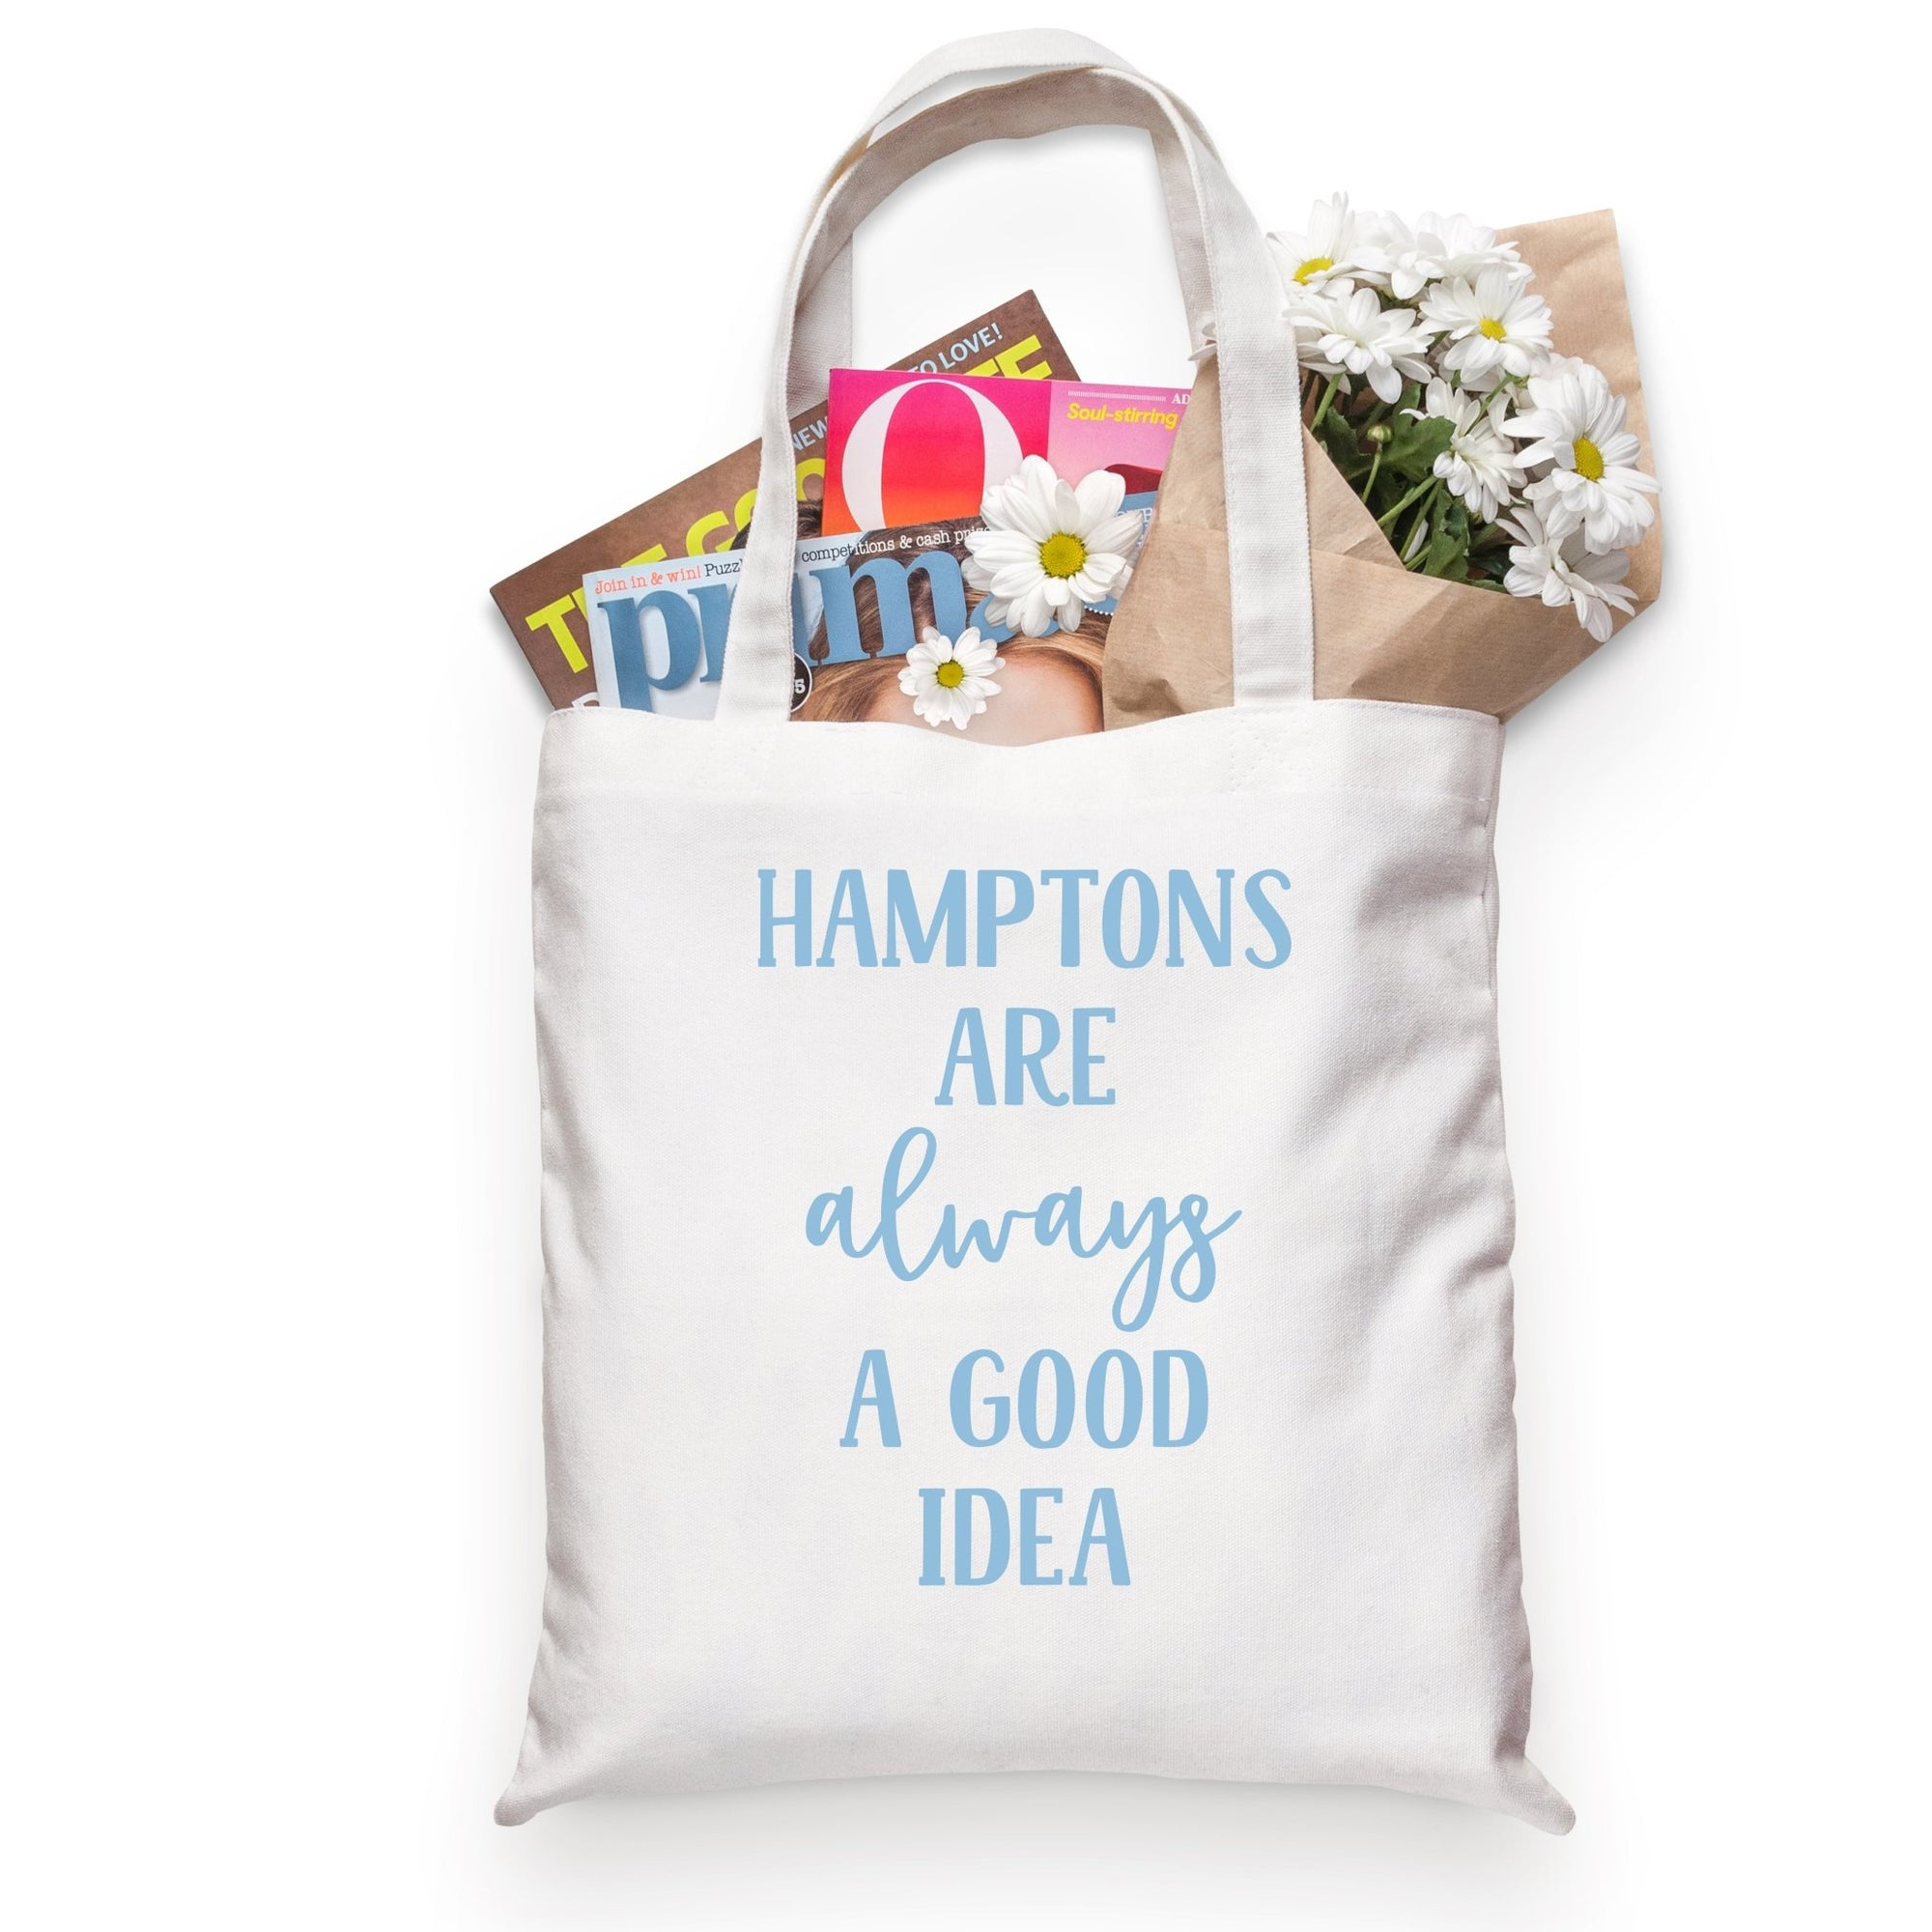 The Hamptons Are Always A Good Idea Tote